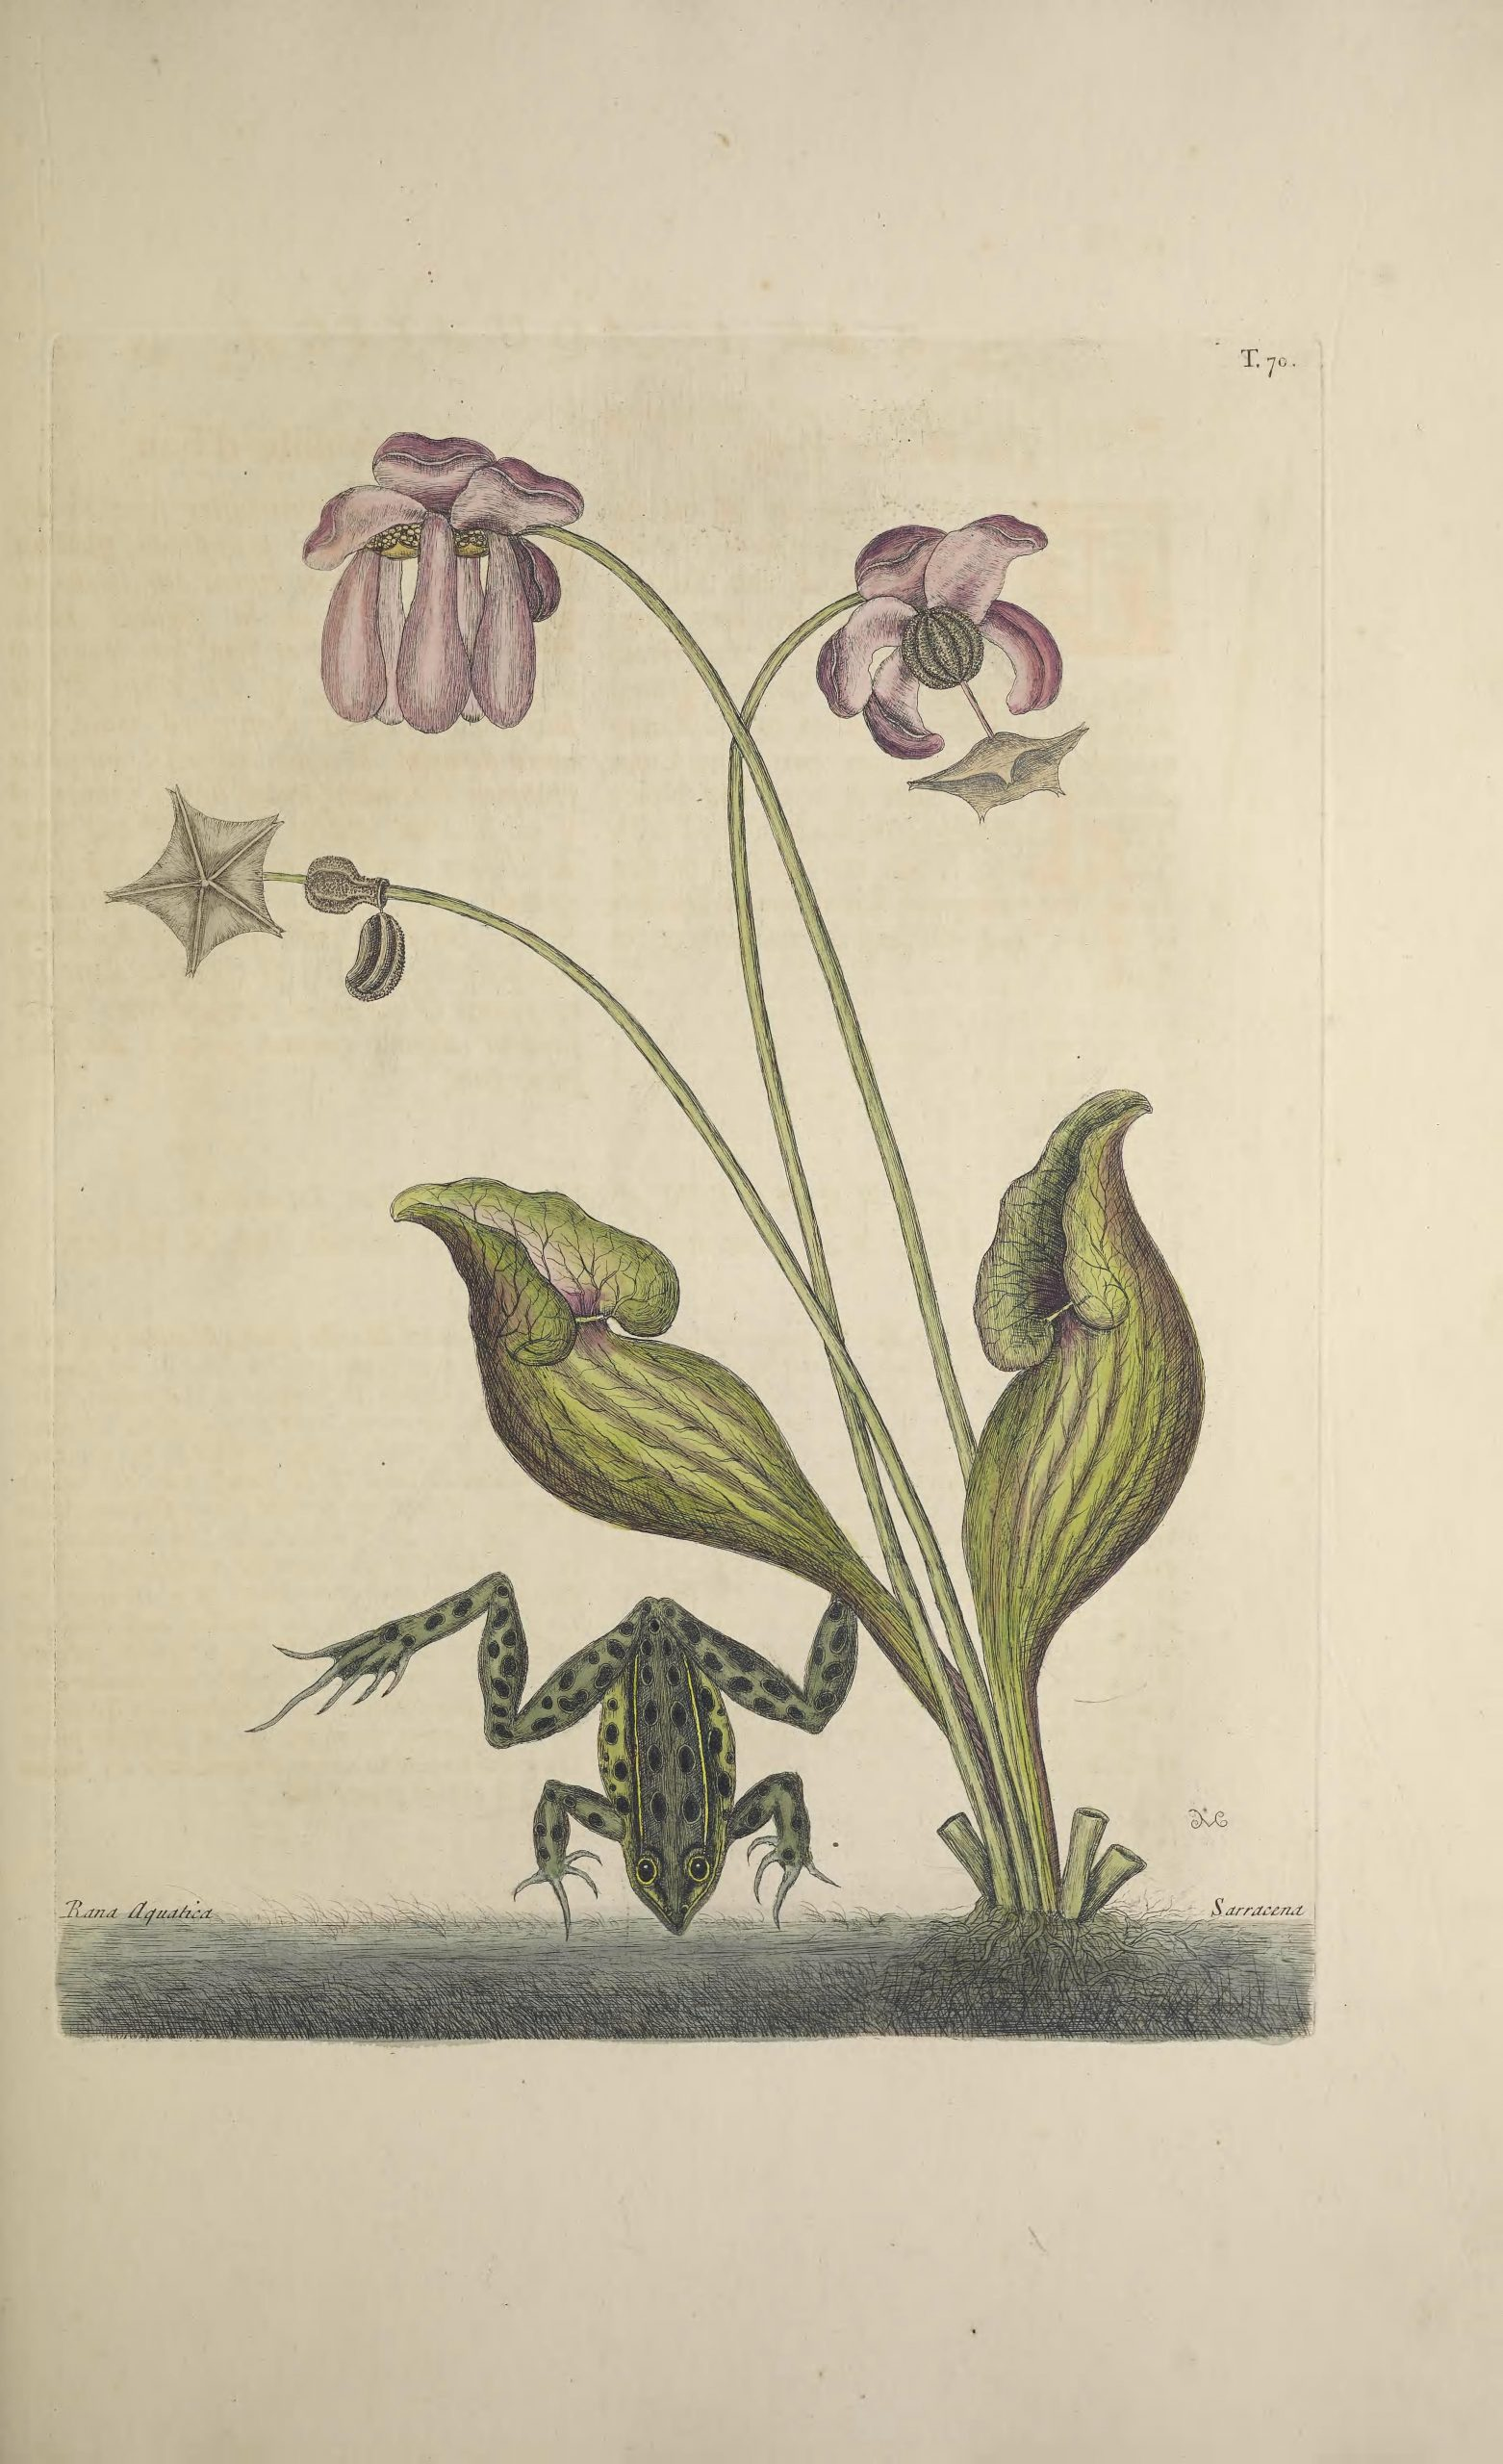 Full color sketch of a pitcher plant including modified leaves and flowering parts, with yellow-striped, black-spotted frog beneath